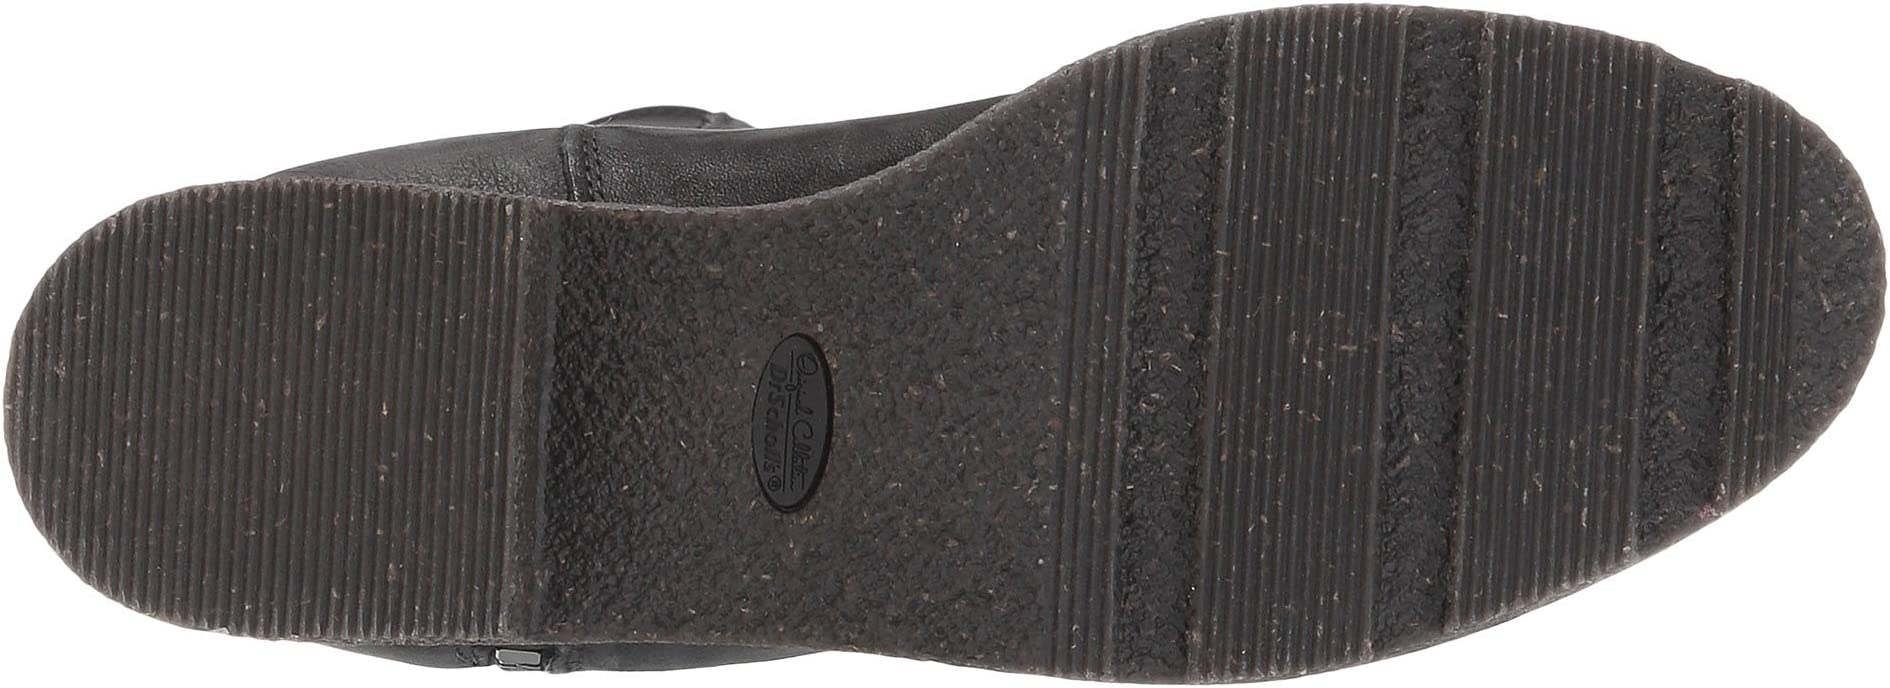 Dr. Scholl's Tinslee - Original Collection | Women's shoes | 2020 Newest